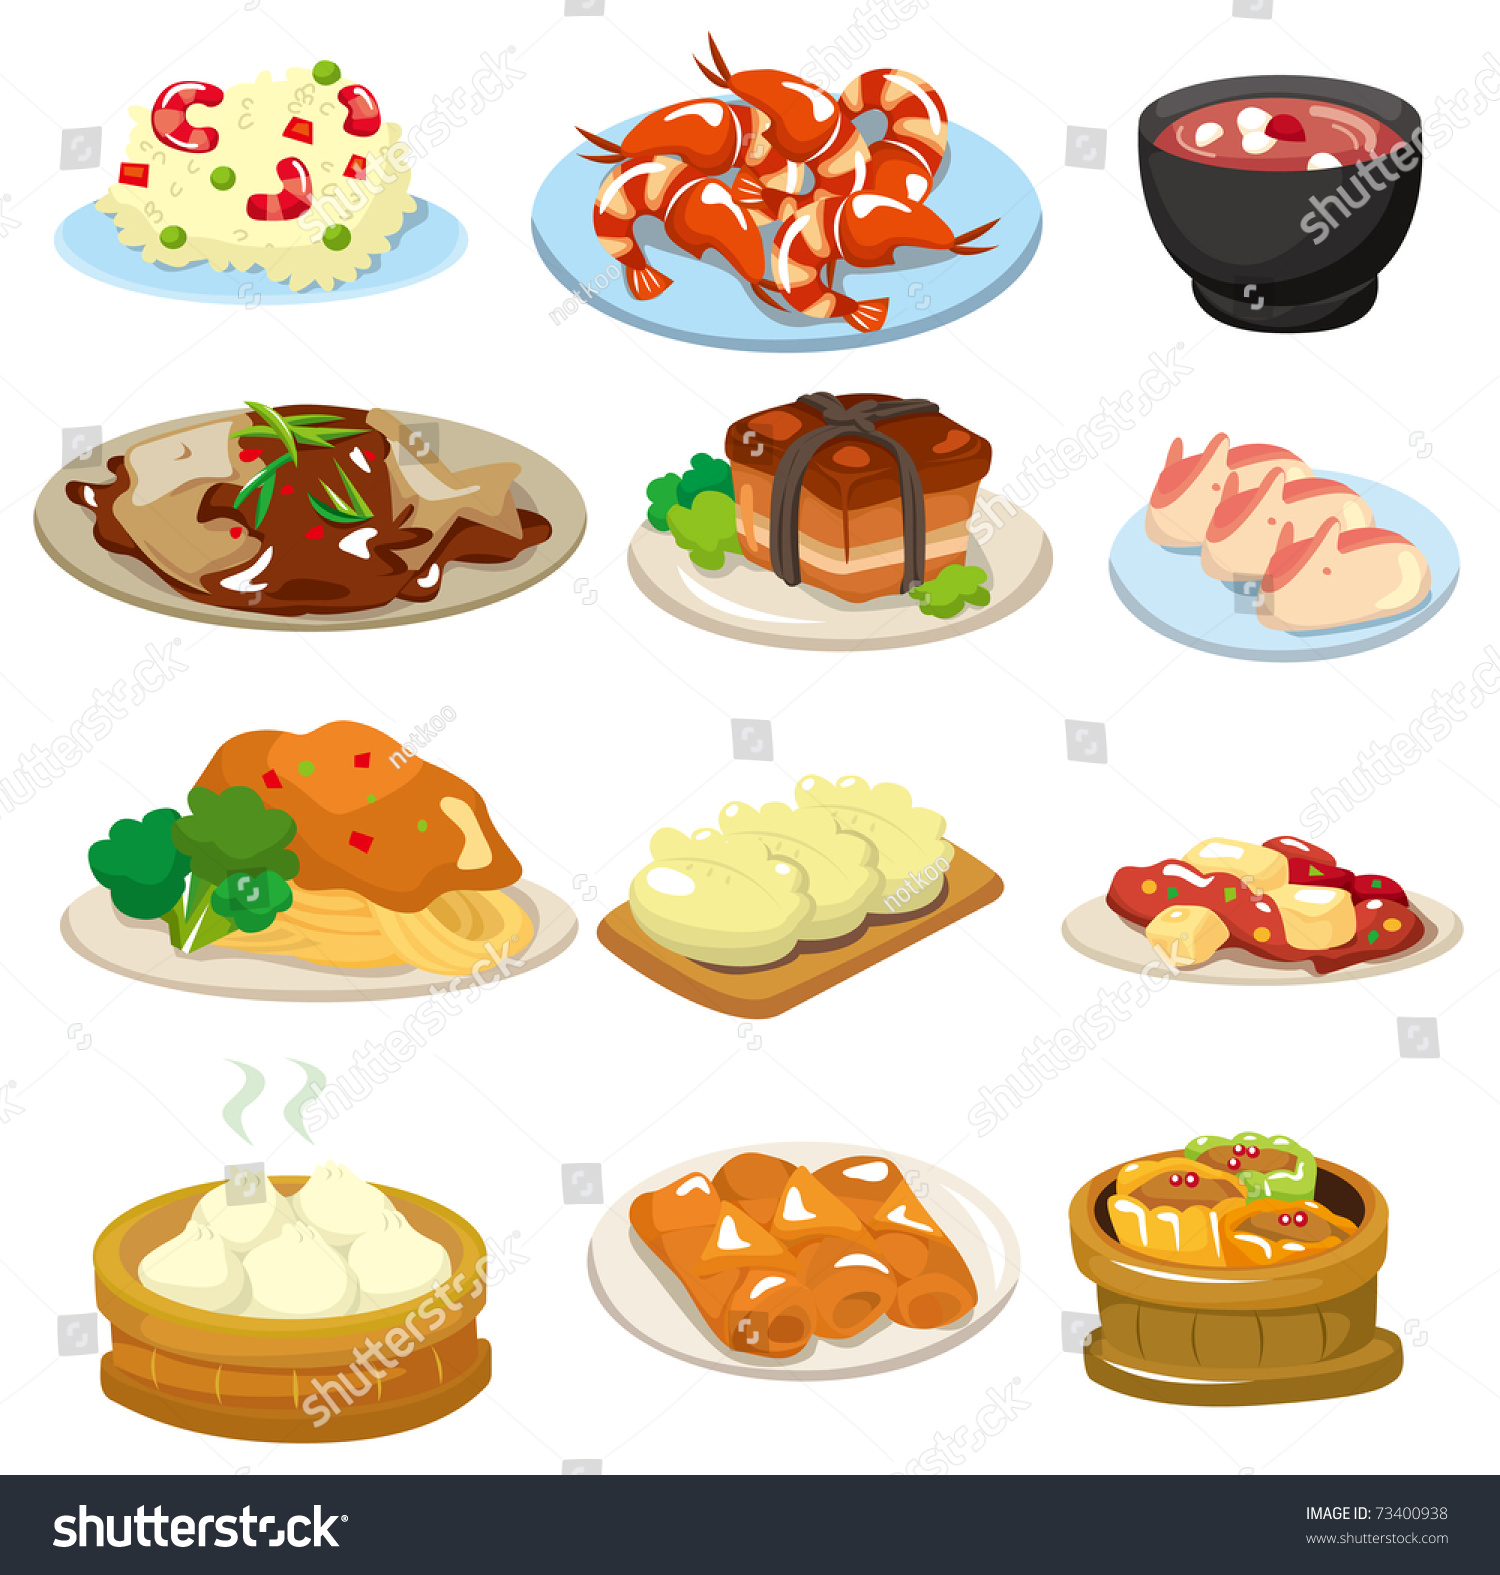 Chinese symbol for food gallery symbol and sign ideas chinese symbol food image collections symbol and sign ideas symbol for pork chinese symbol for pork buycottarizona